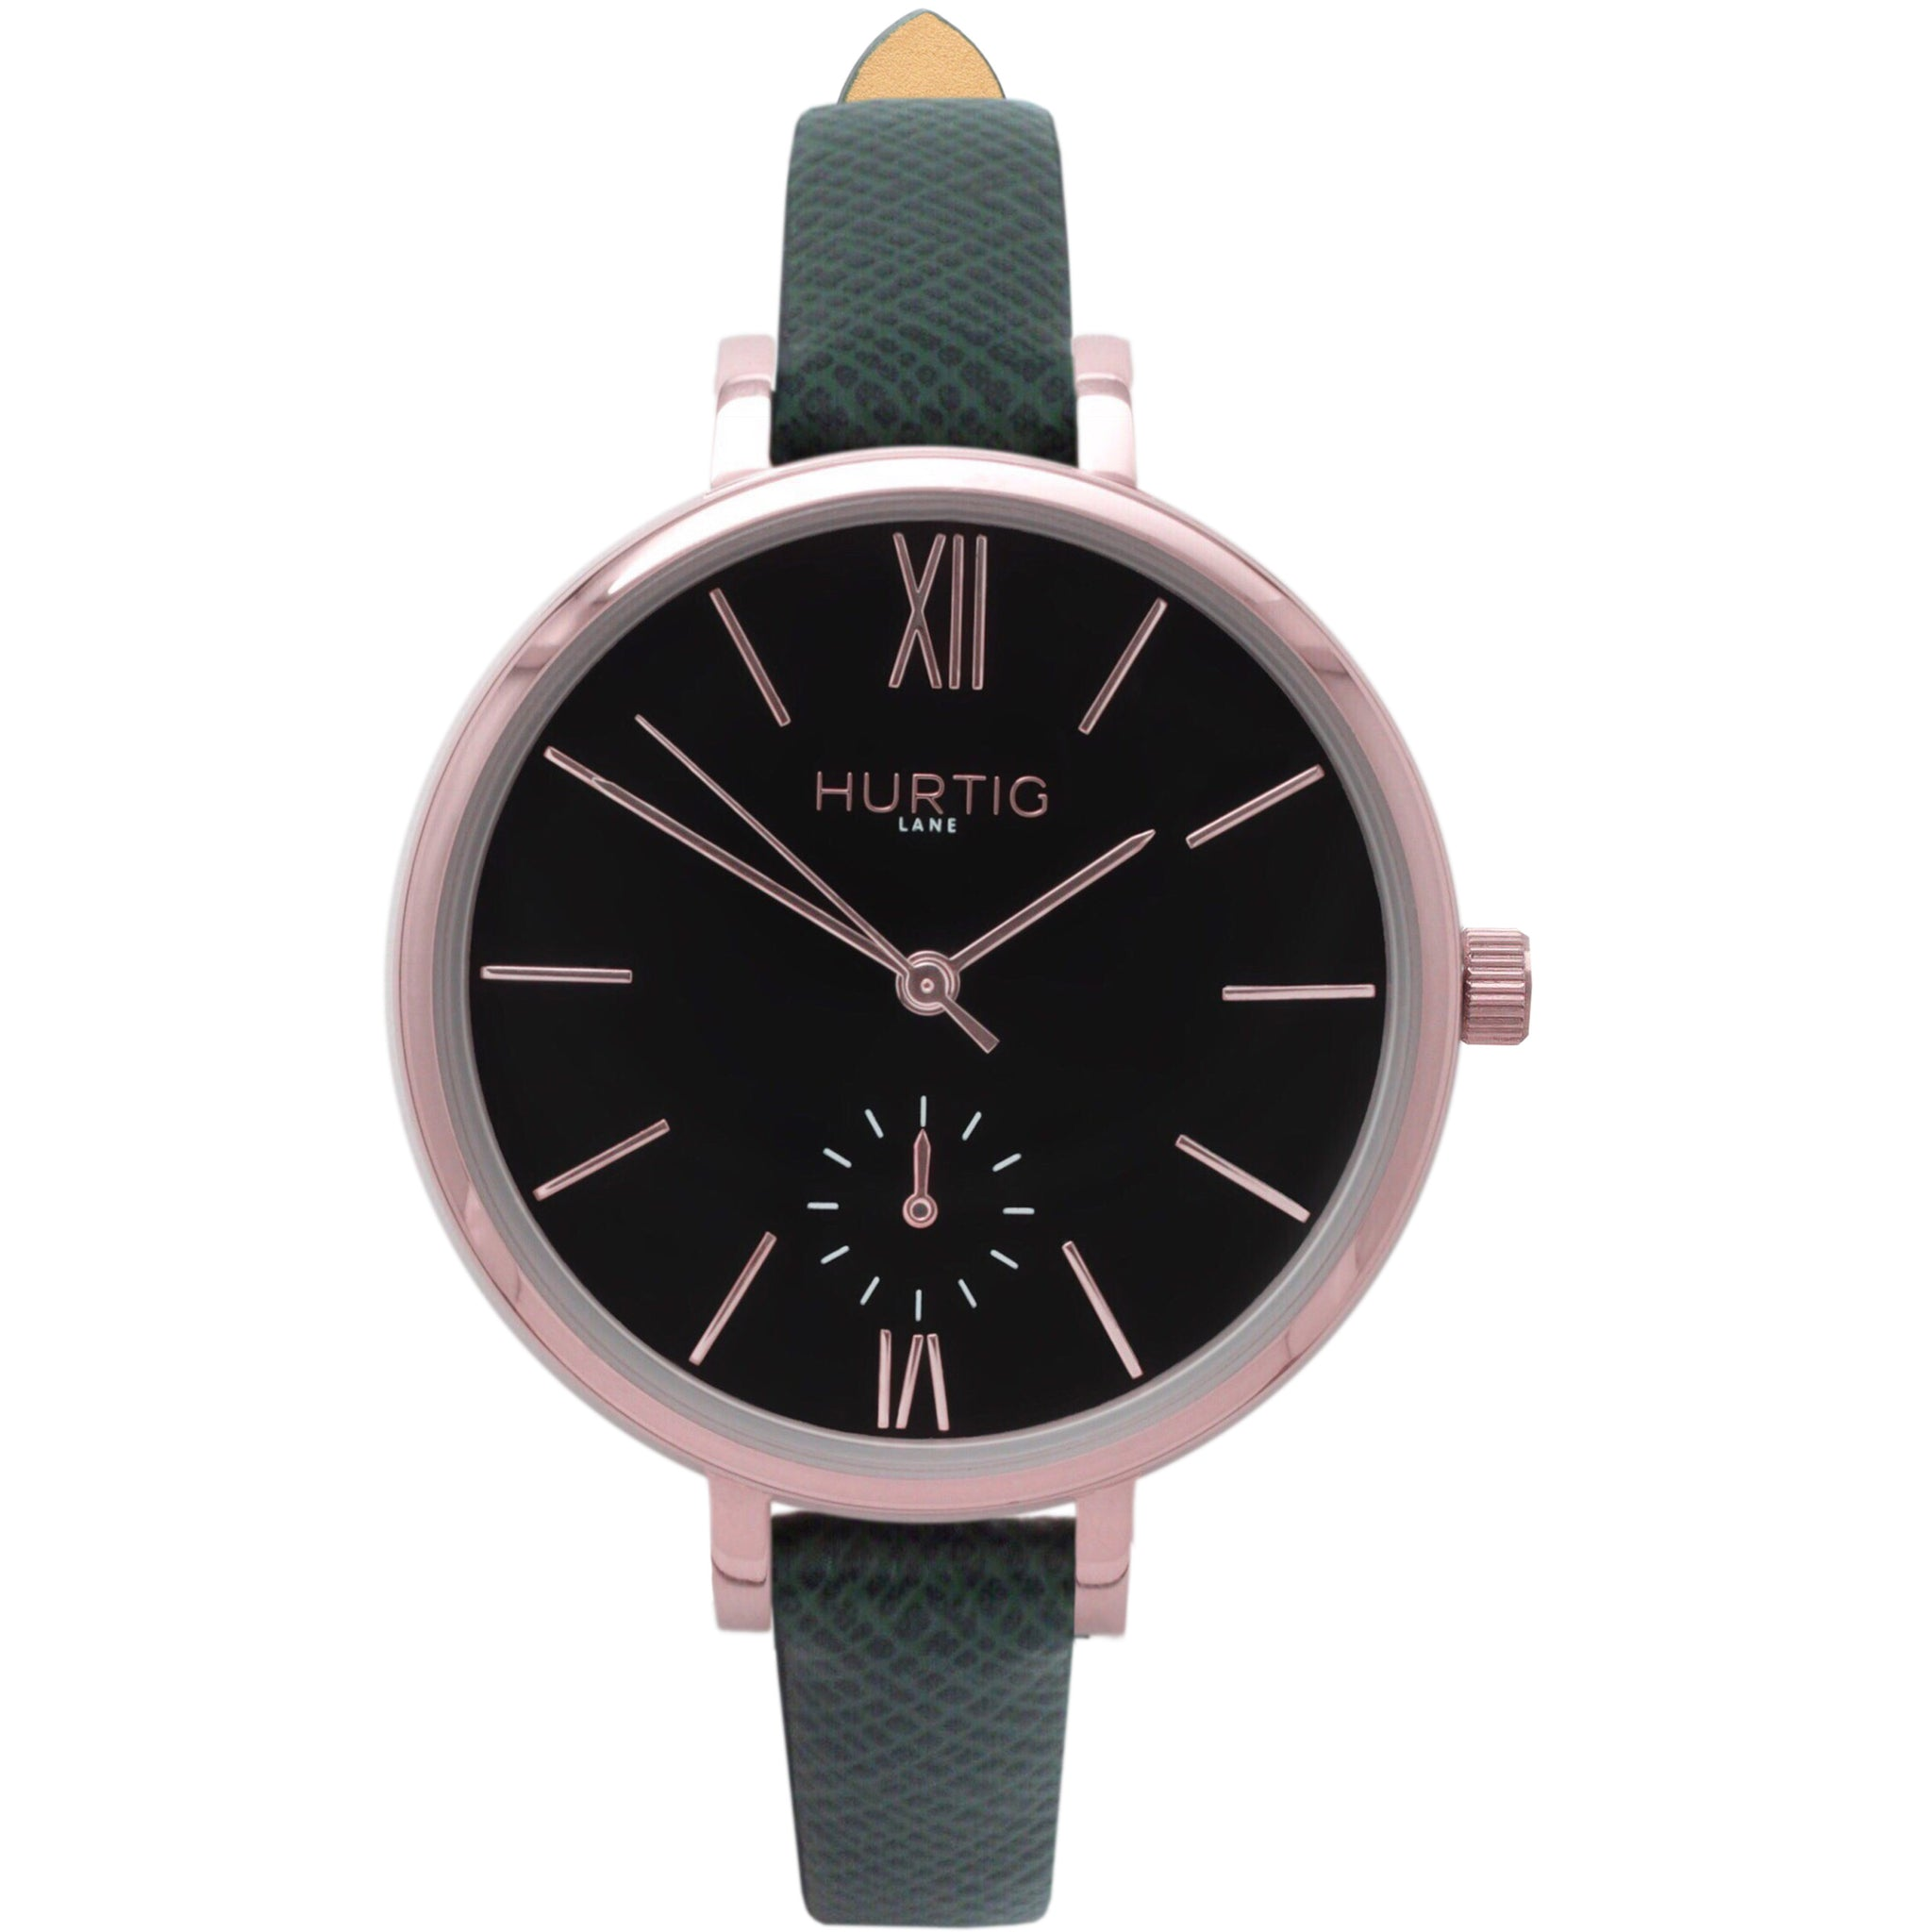 AMALFI WOMEN'S WATCH, ROSE GOLD/BLACK/GREEN